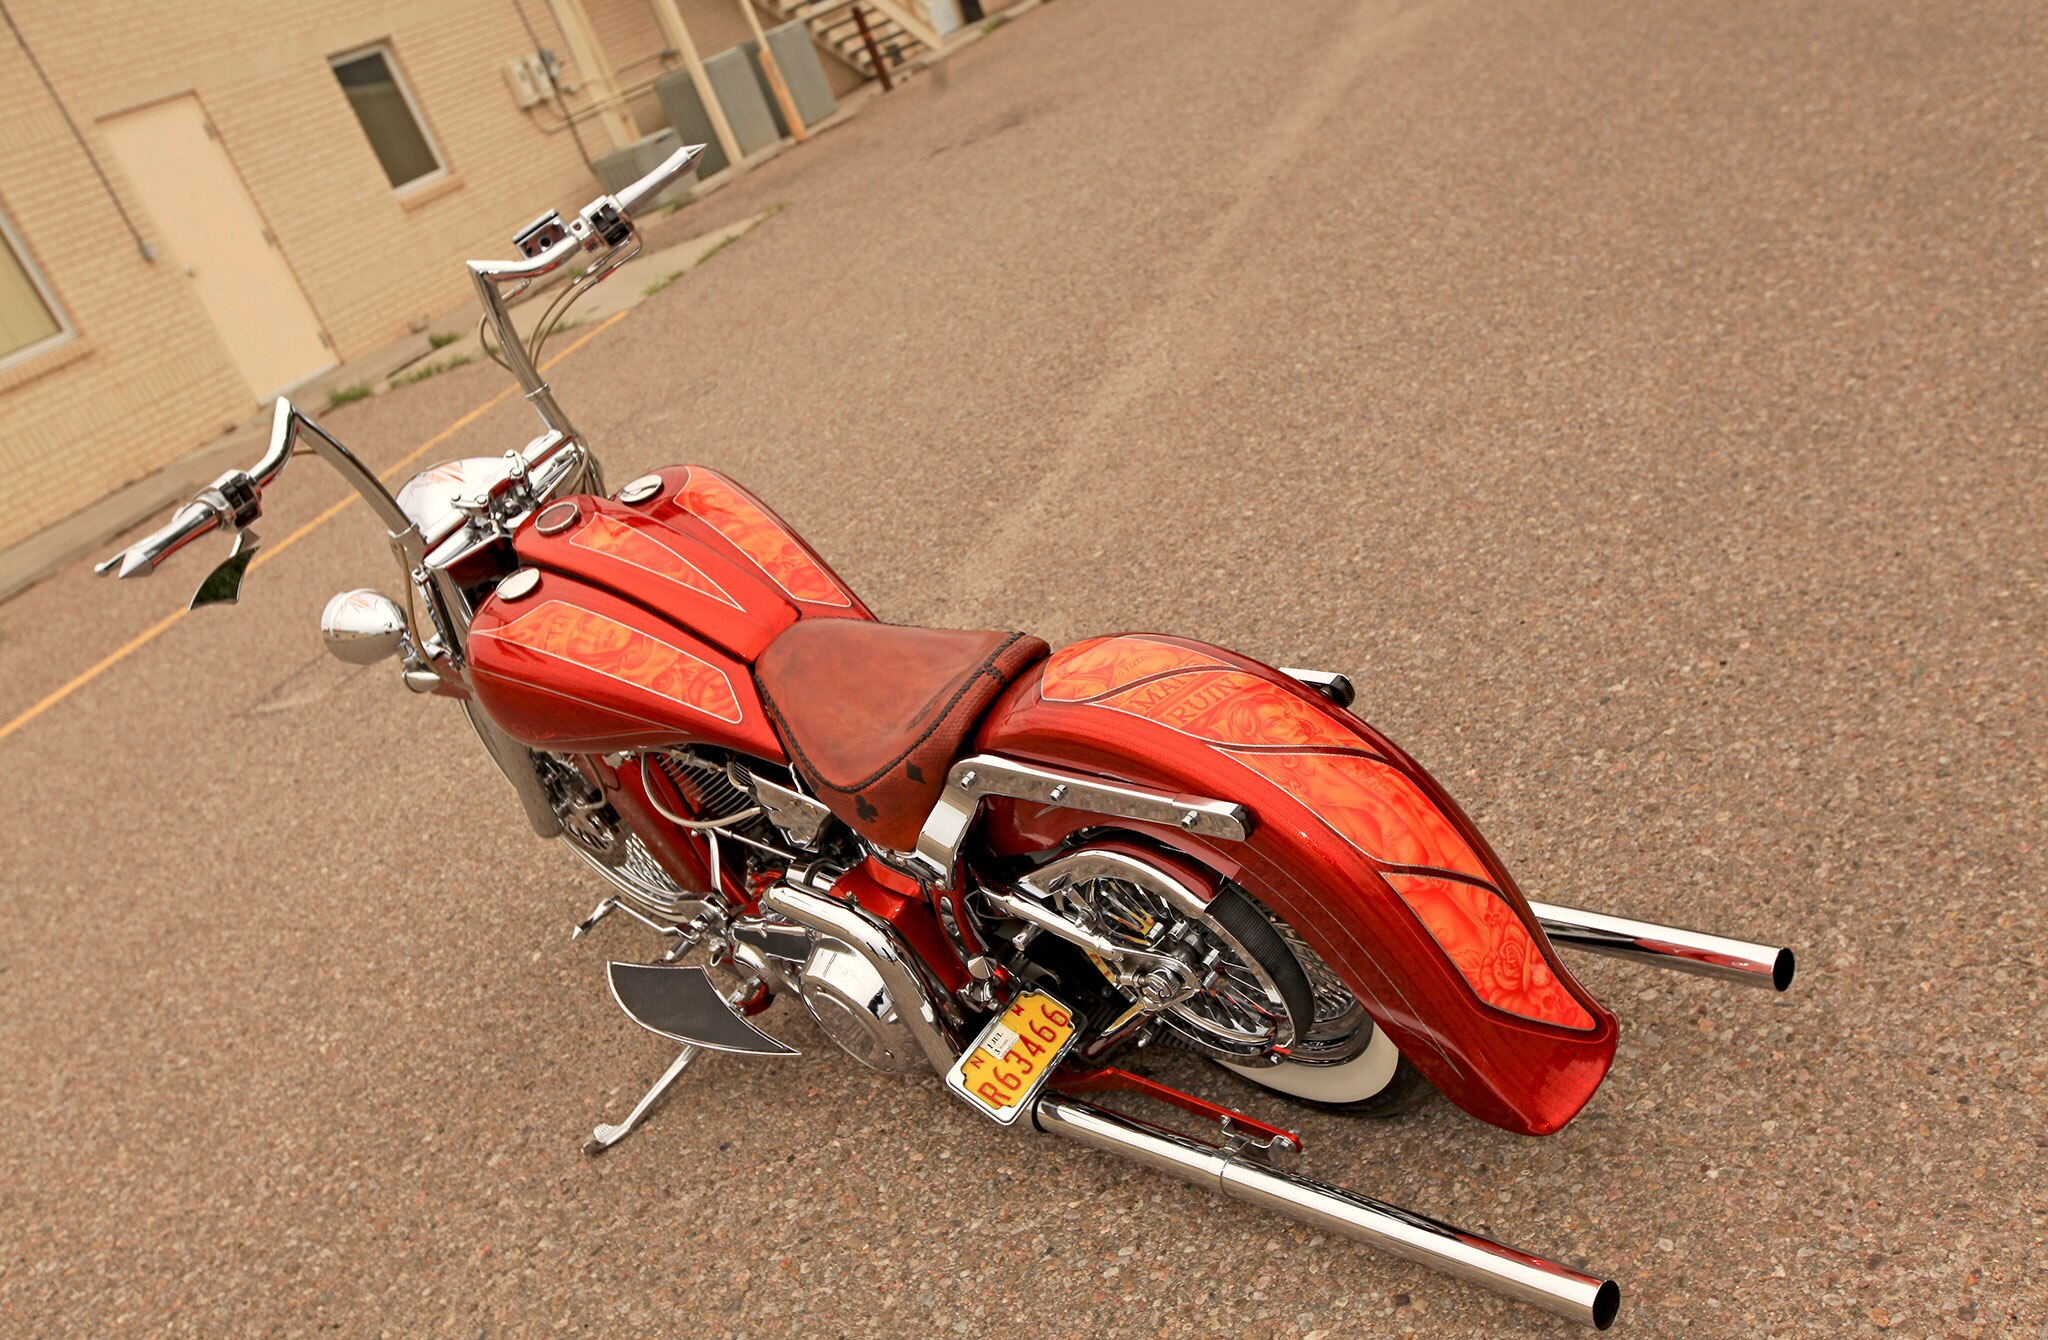 1987-harley-davidson-softail-top-view-092